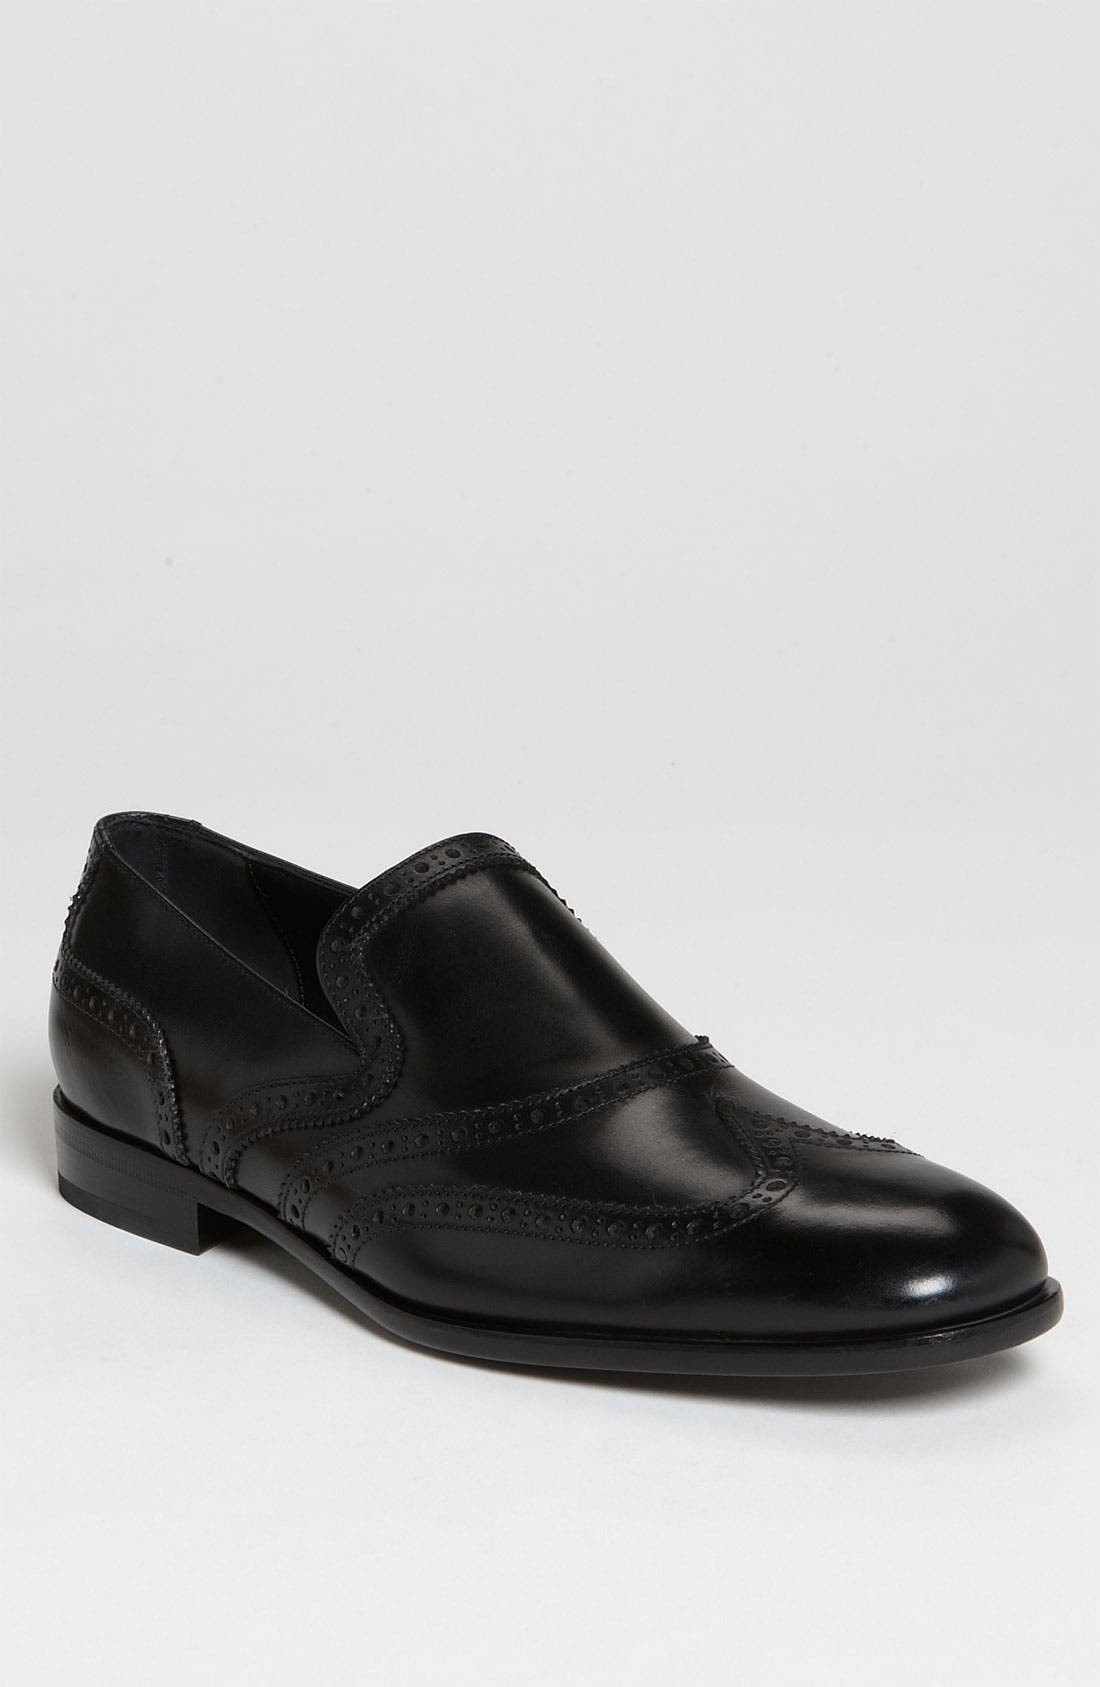 Main Image - Salvatore Ferragamo 'Beltramo 2' Loafer